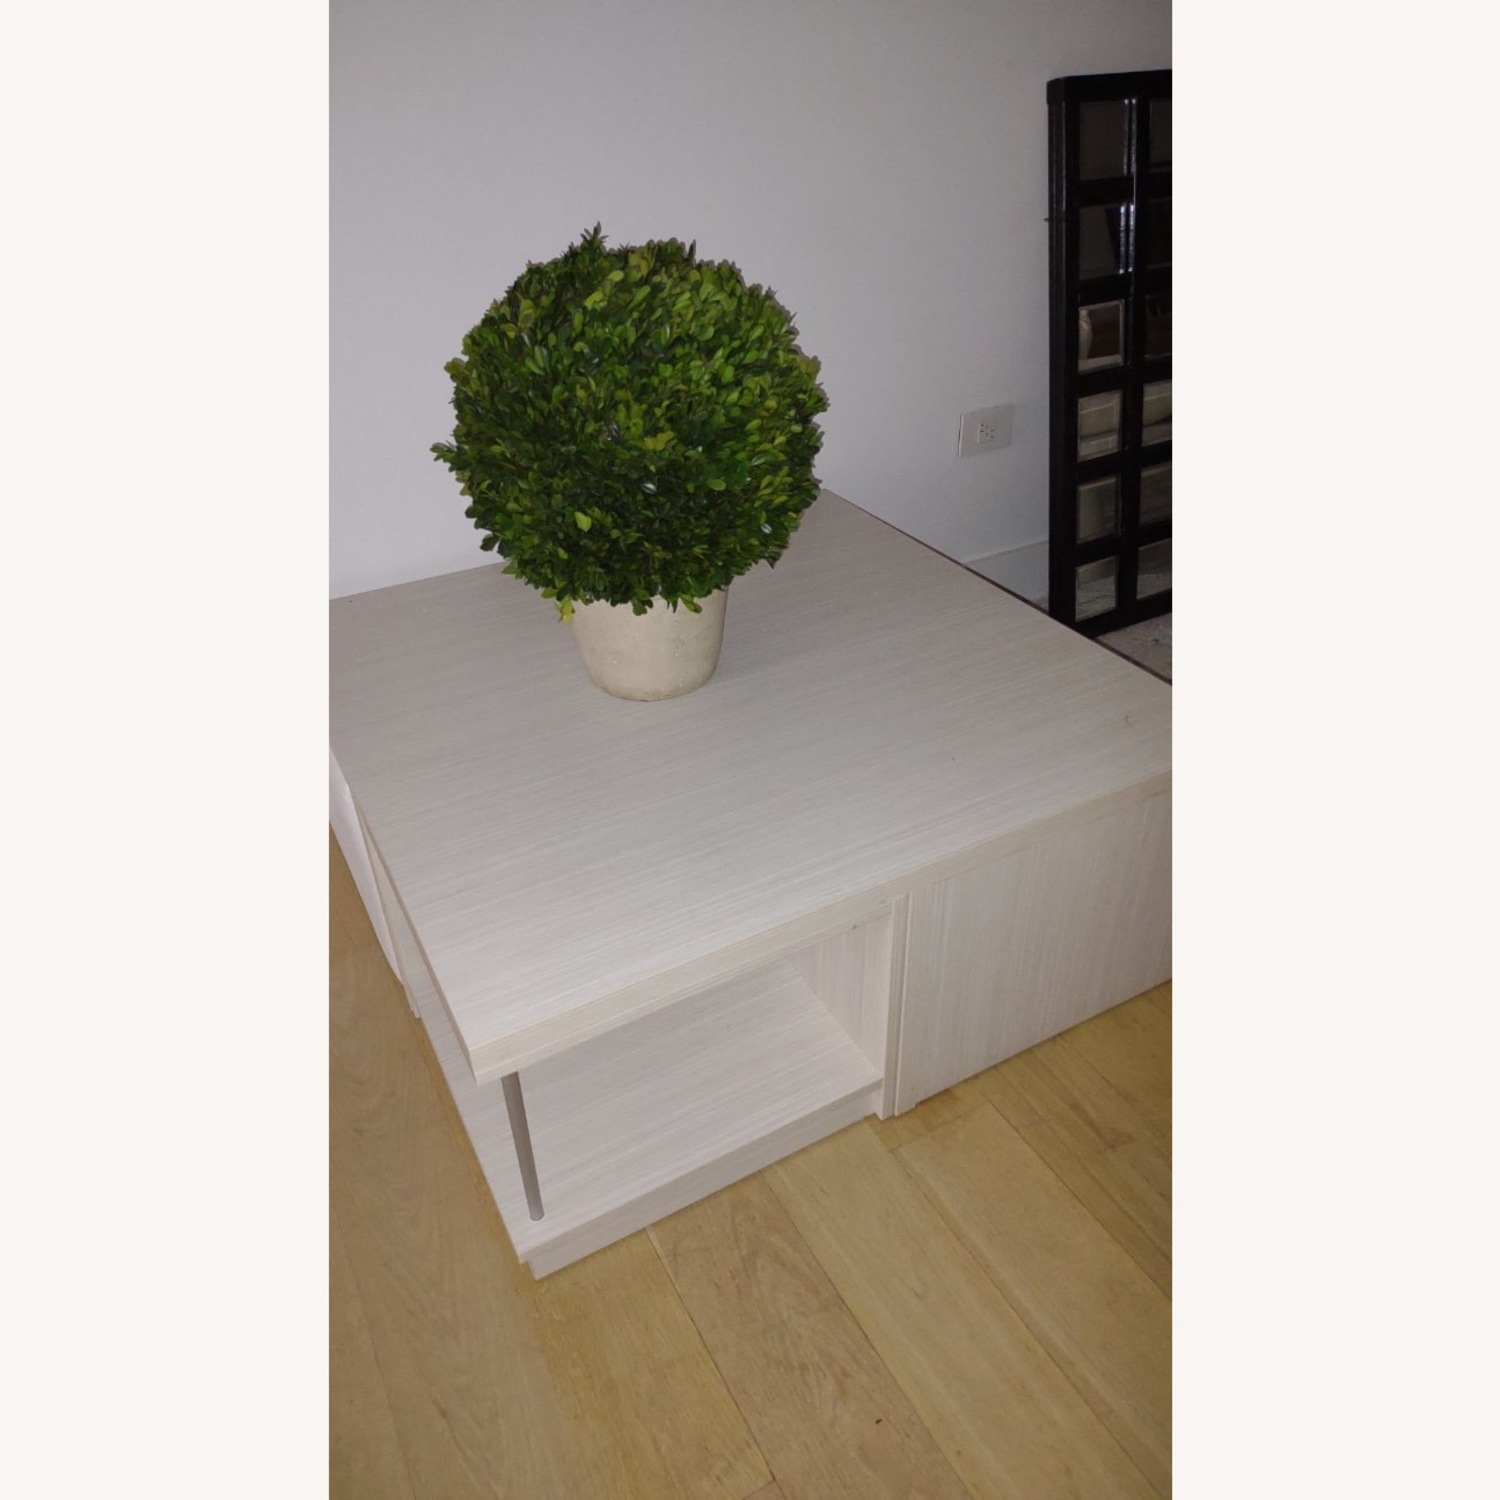 Modani Wooden Coffee Table with Ottoman Stools - image-1